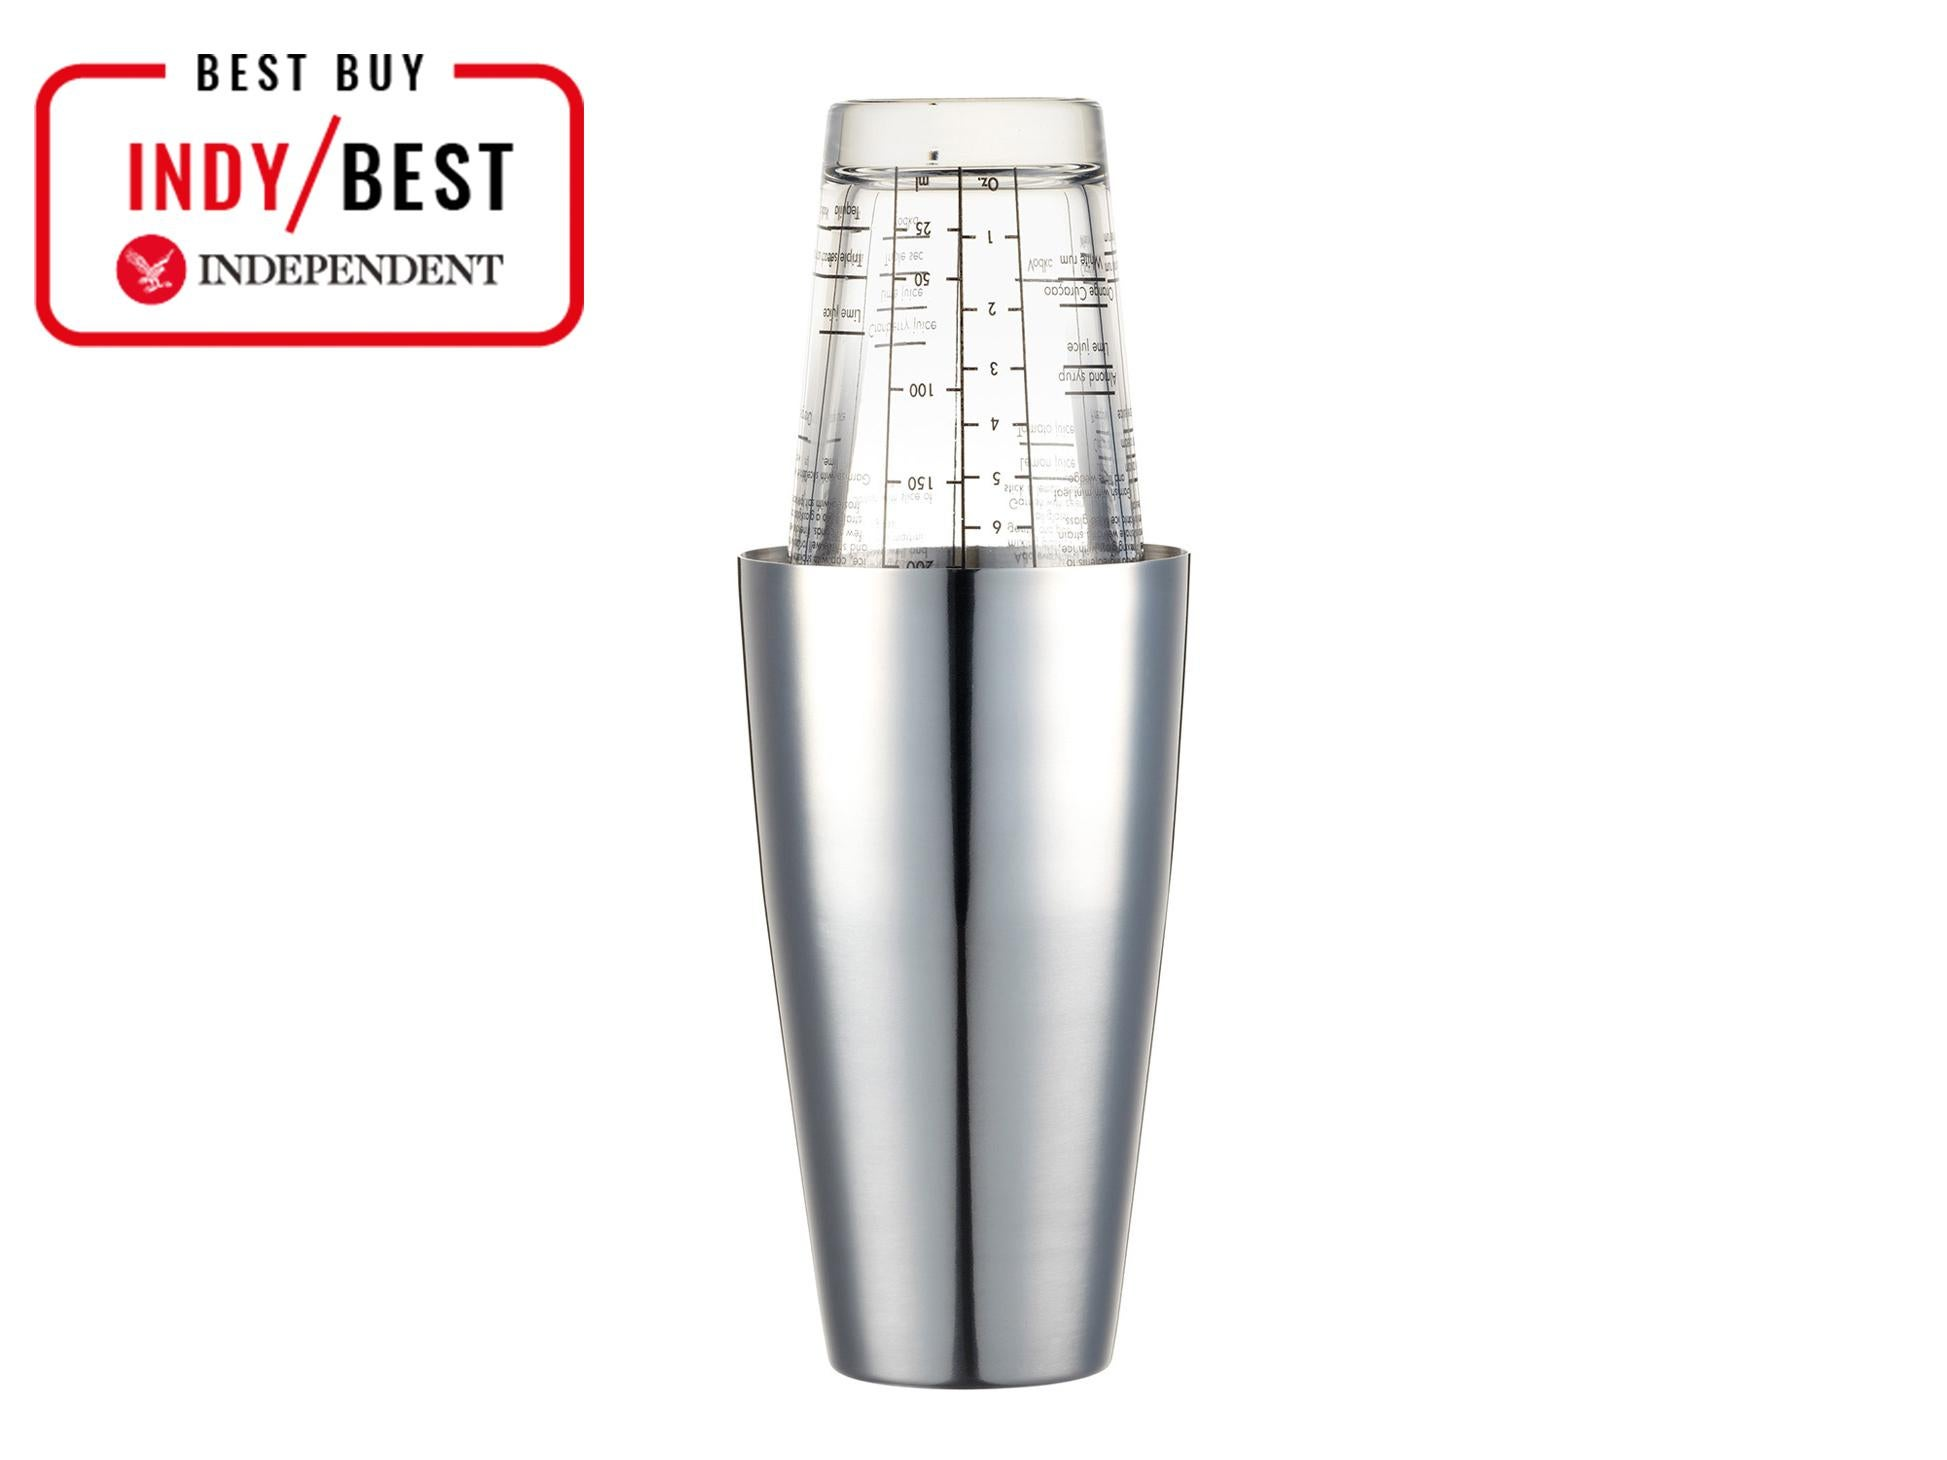 Best cocktail shaker that is affordable, easy to use and stylish